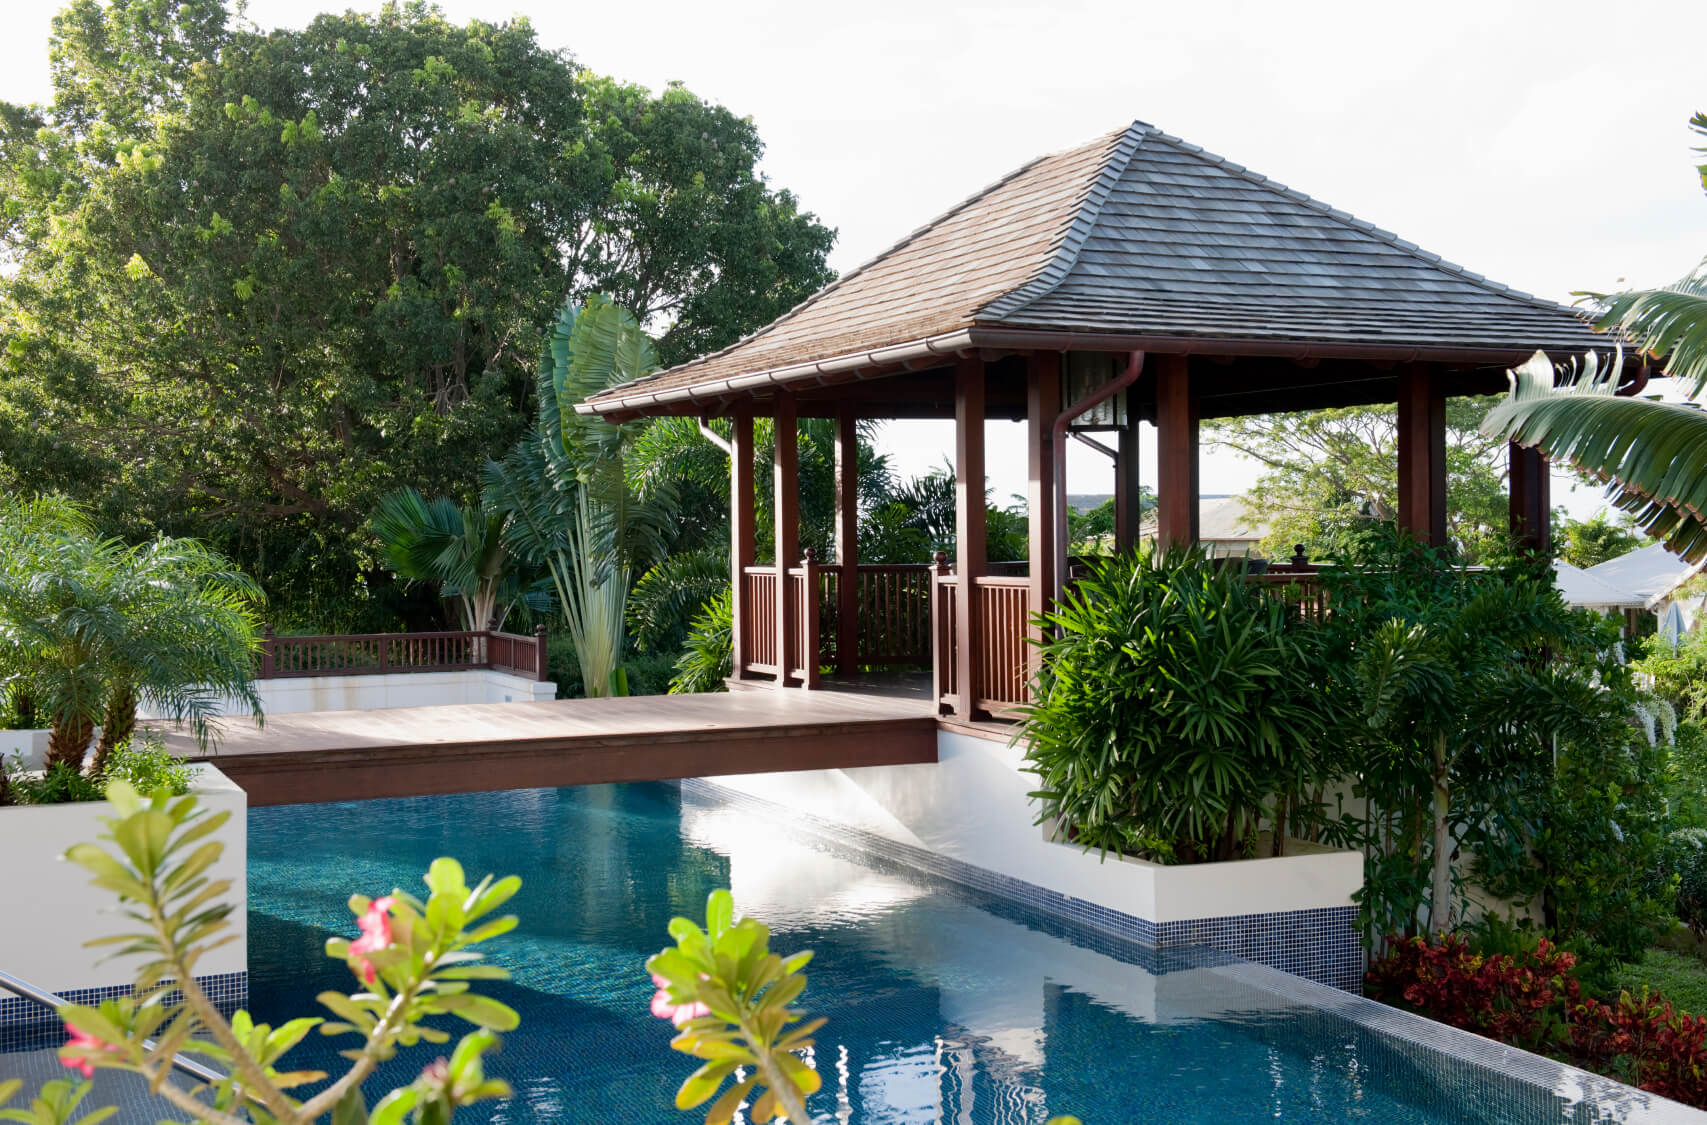 34 Glorious Pool Gazebo Ideas regarding 13 Awesome Concepts of How to Build Gazebo Ideas For Backyard